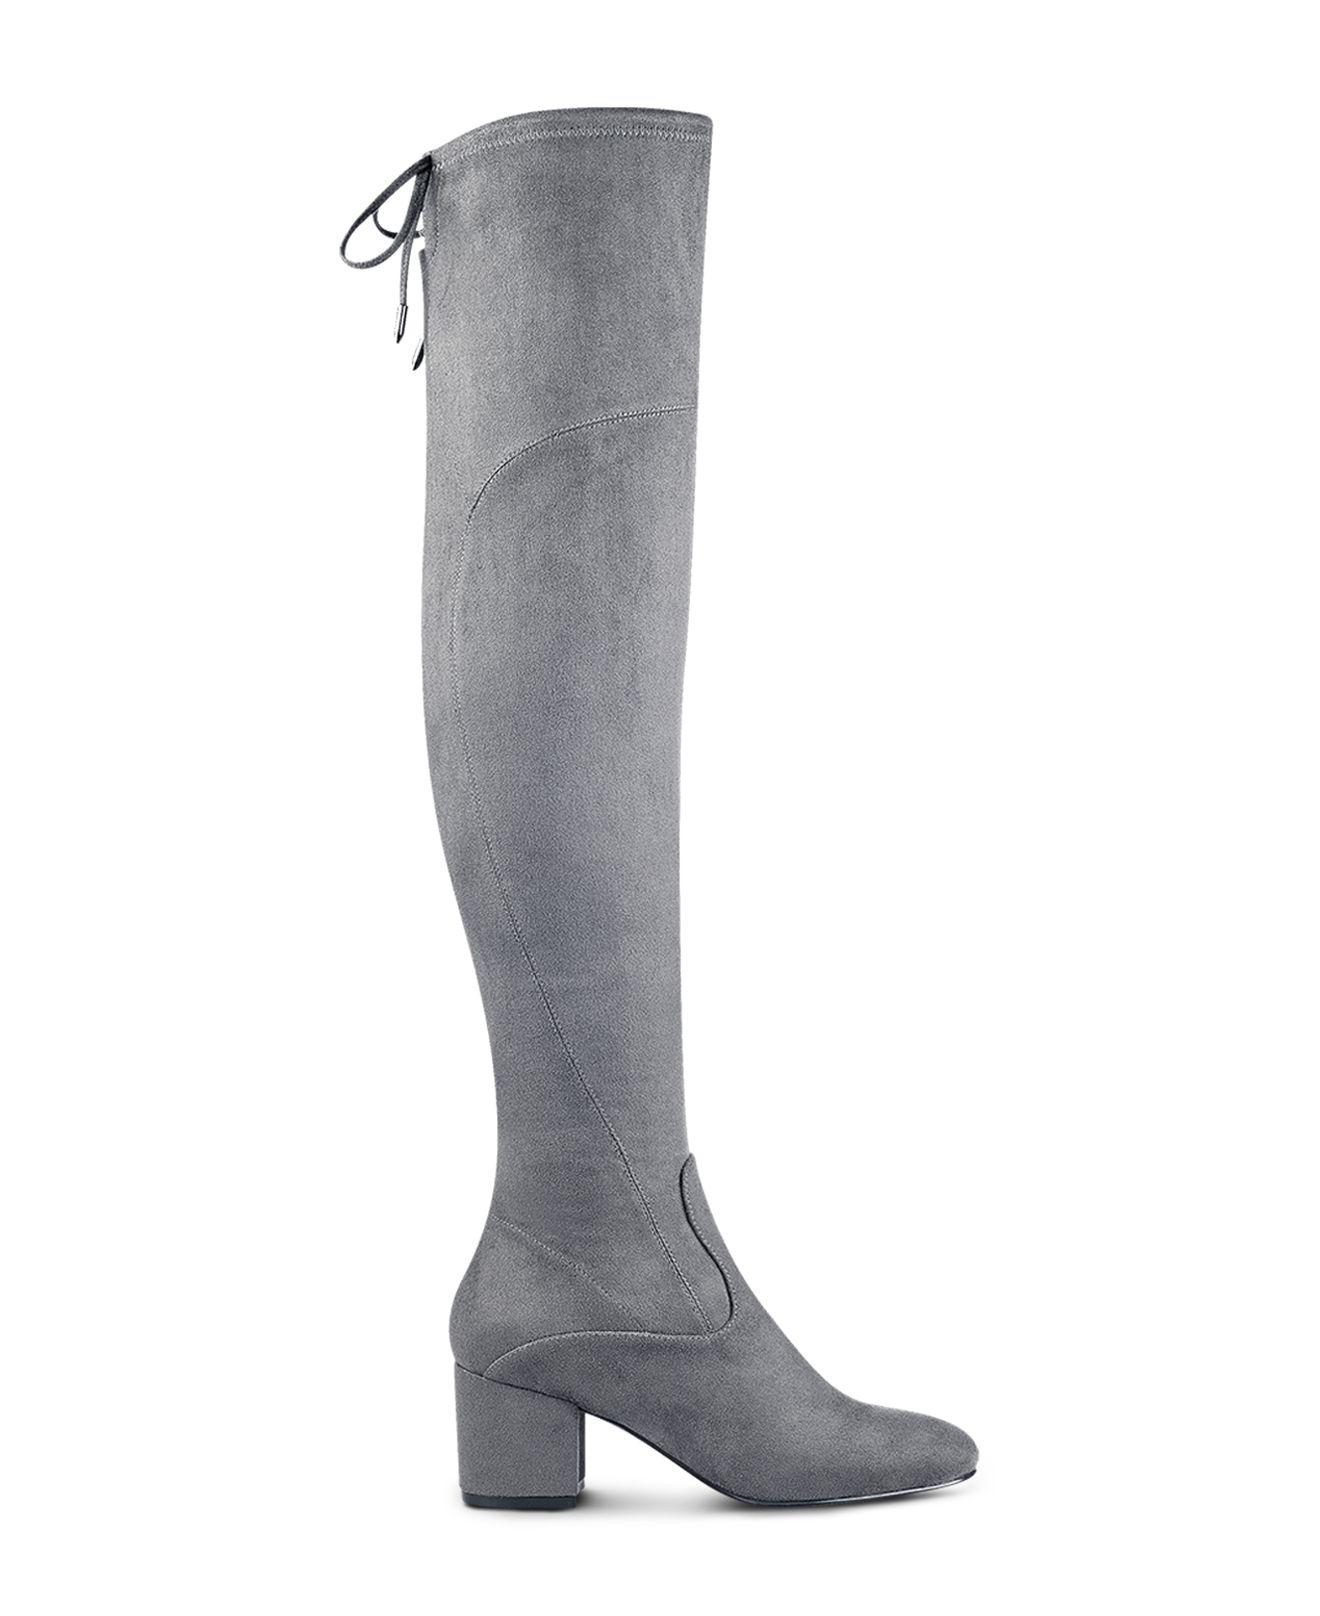 ed477162a71 Ivanka Trump Pelinda Faux Suede Over-the-knee Boots in Gray - Lyst